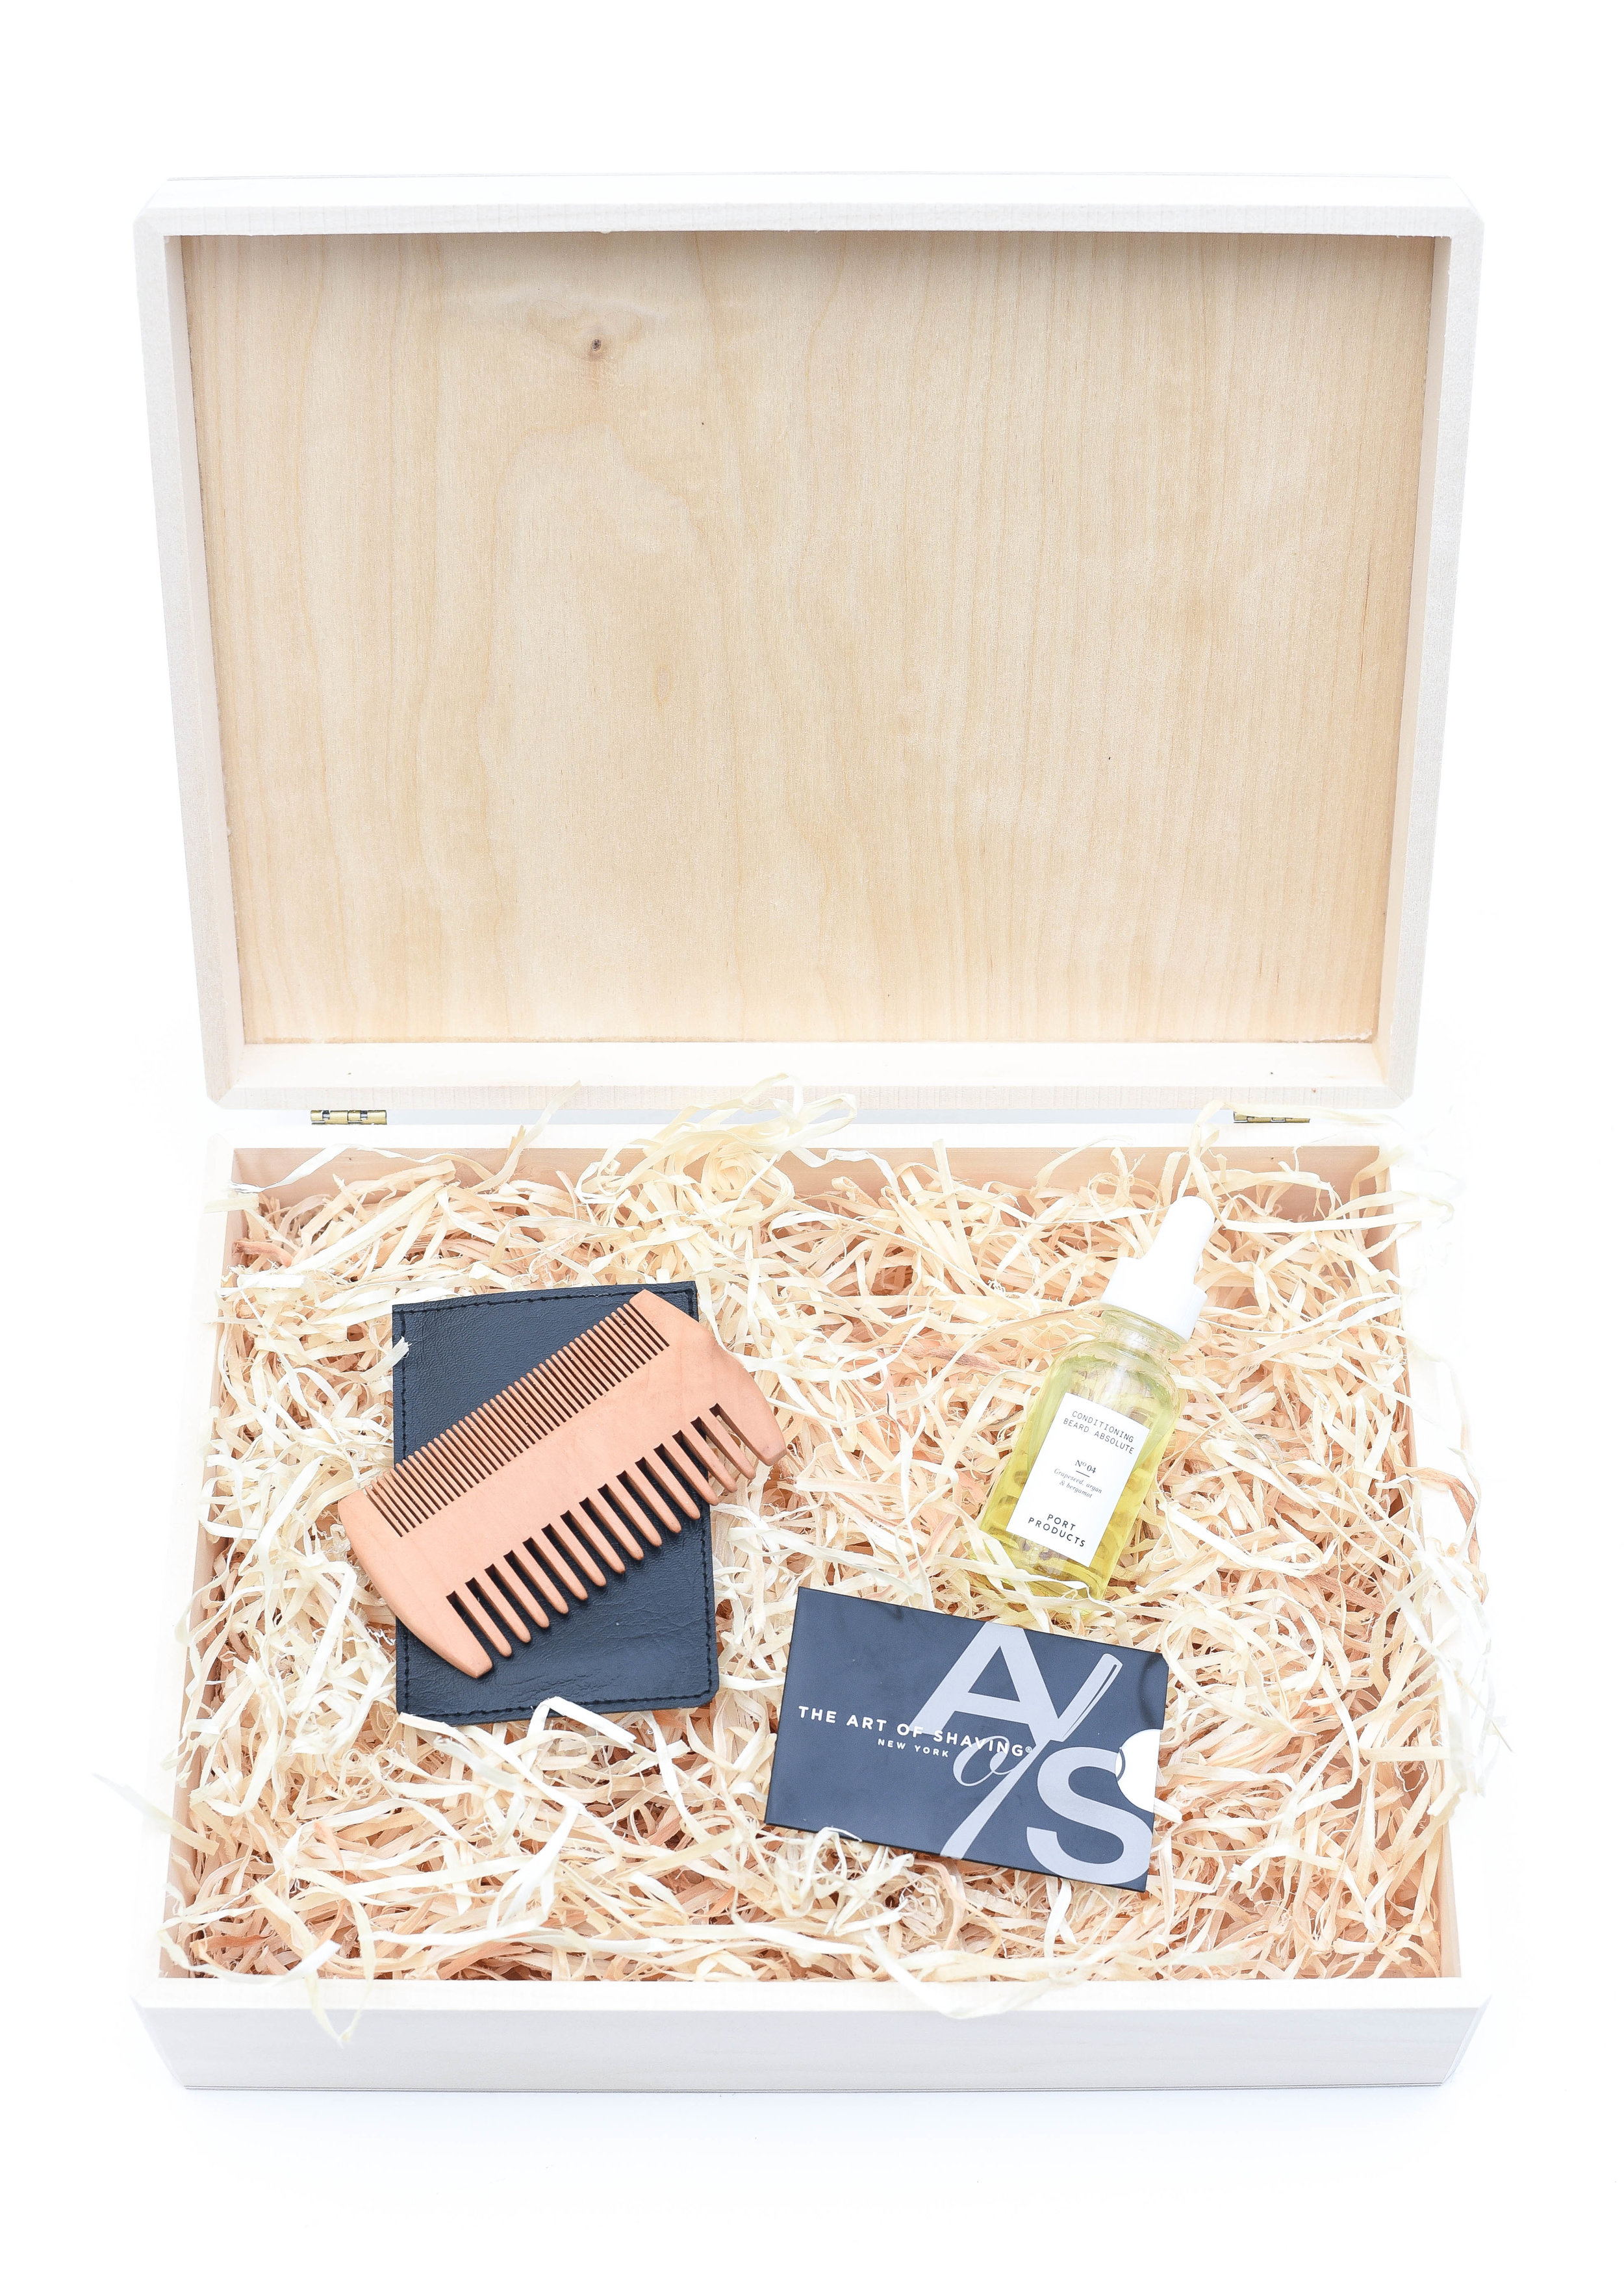 For Him | Beard Care - L:R | Beard Comb | Beard Conditioning Oil | Art of Shaving Gift Card, or better yet pick any of their products for healthy hair growth or daily skin care |